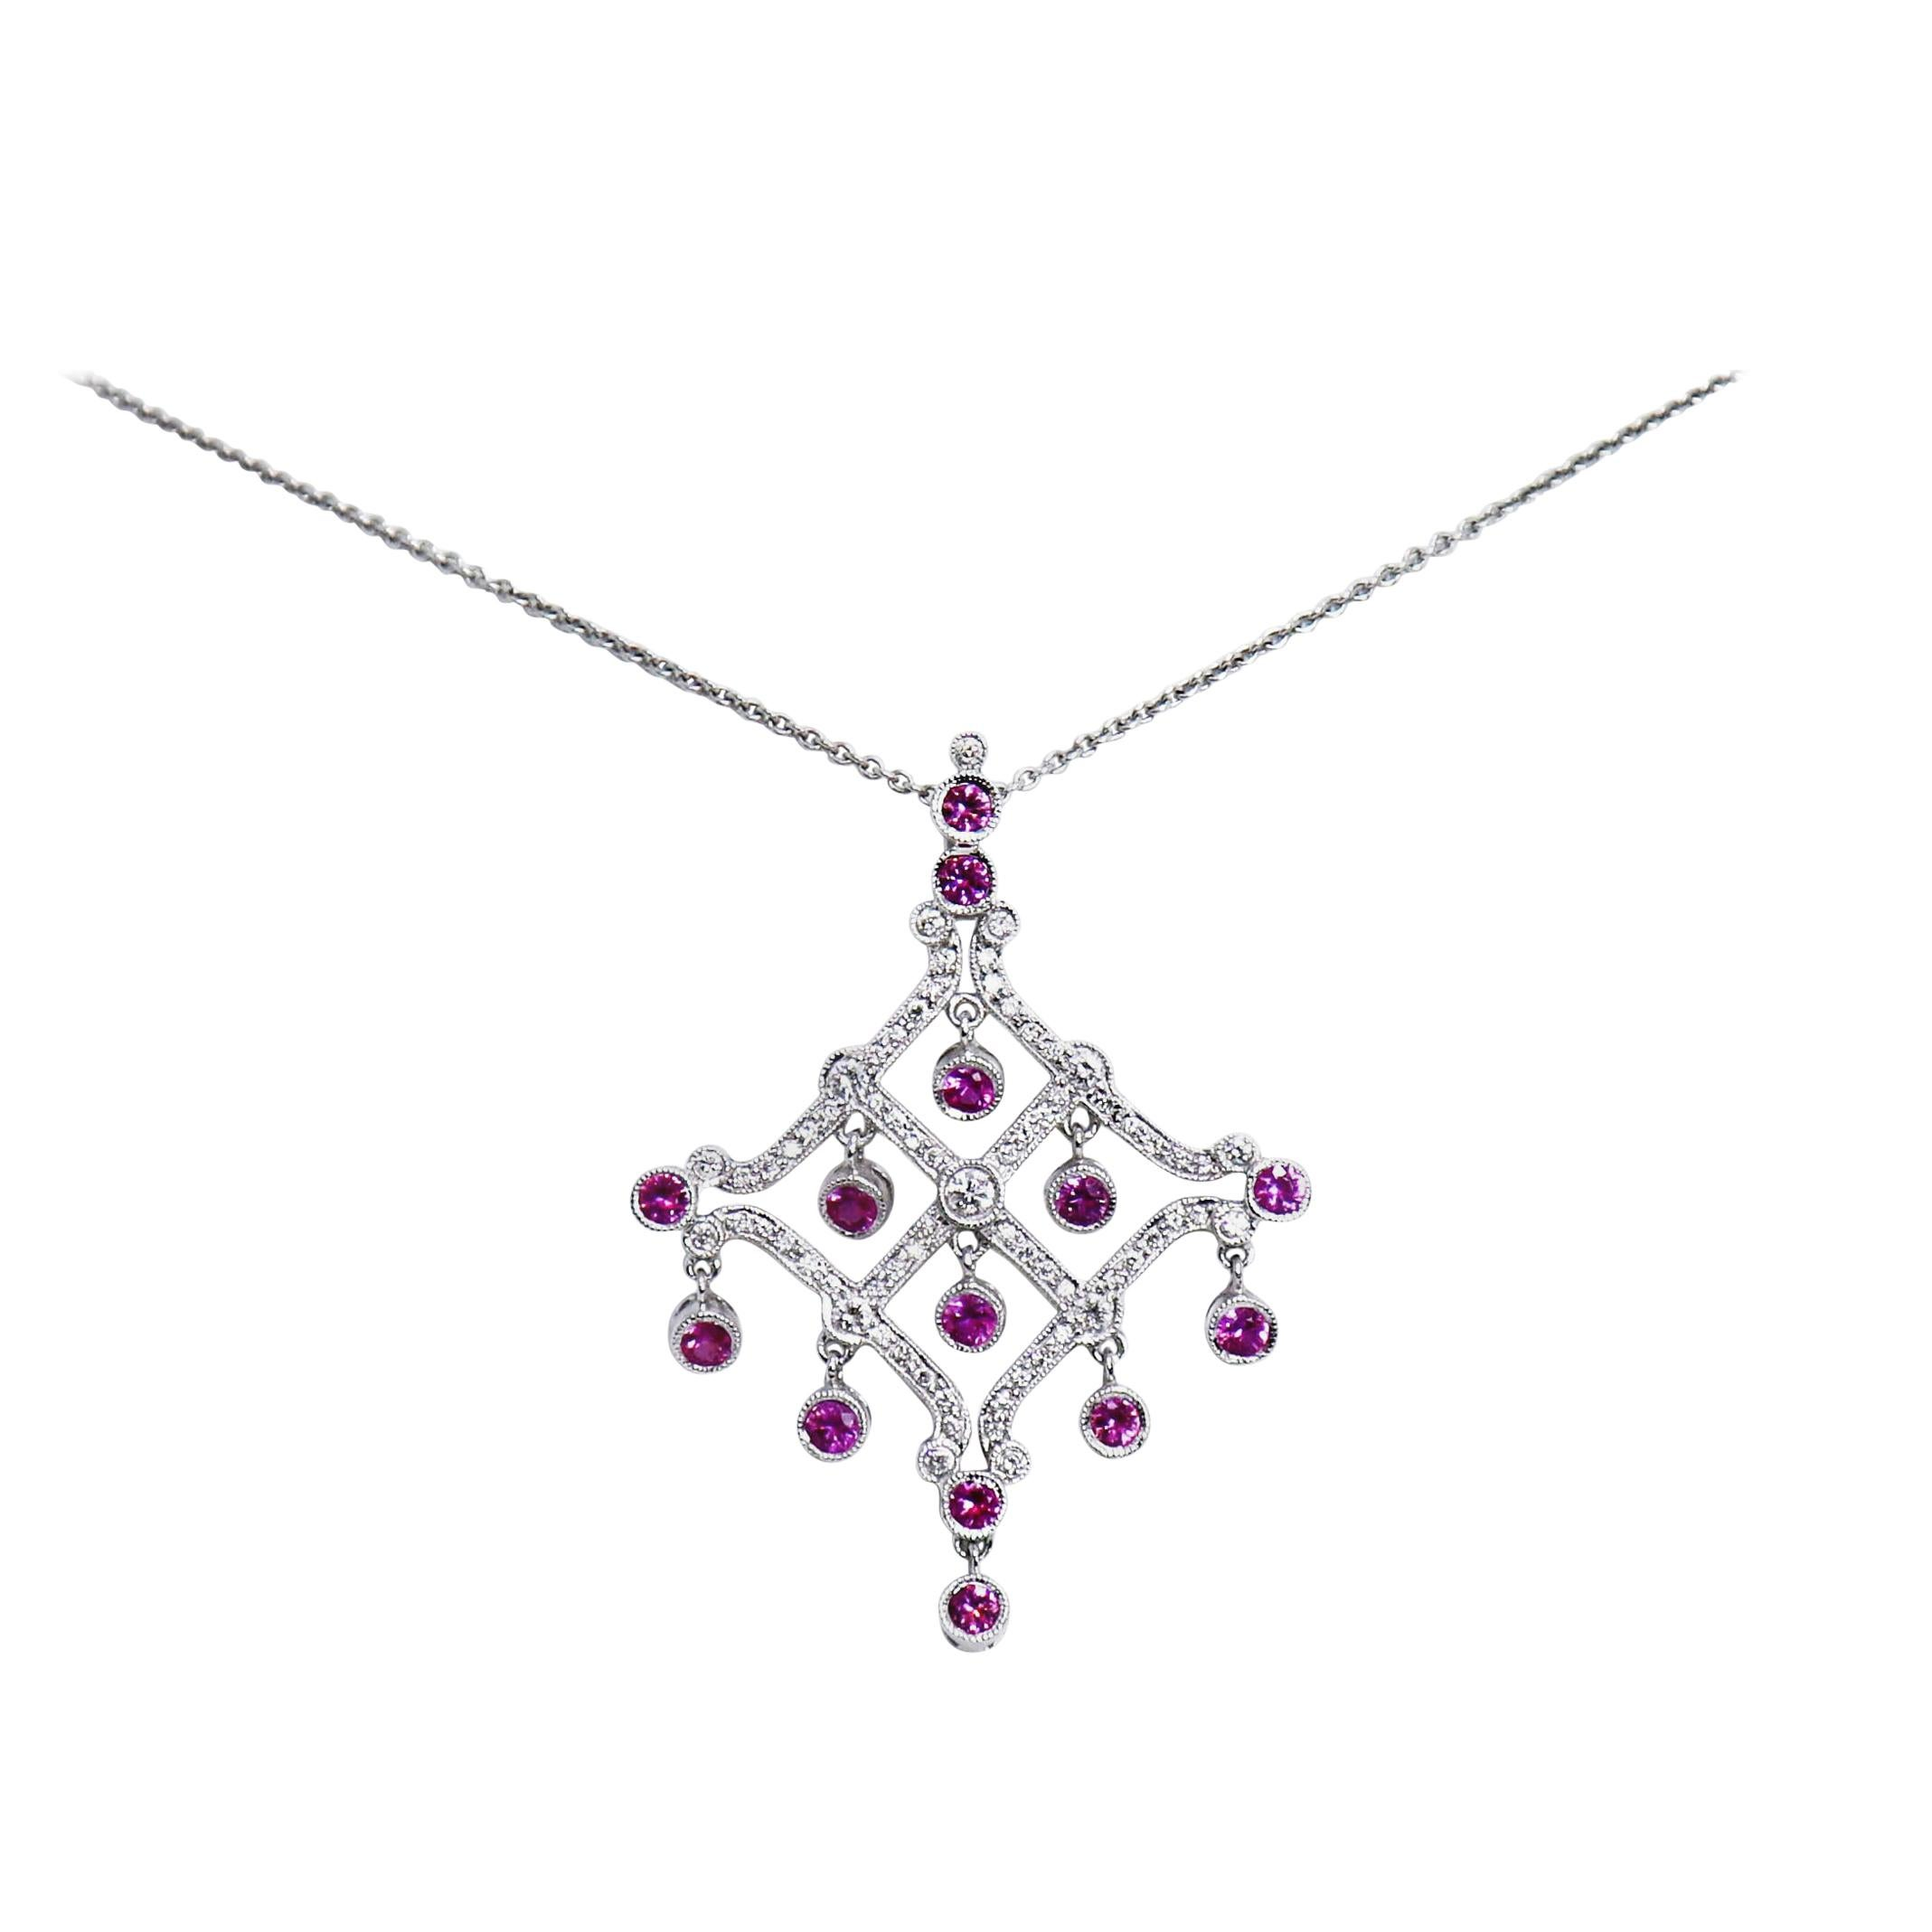 Chandelier Pink Sapphire and Diamond White Gold Pendant Necklace